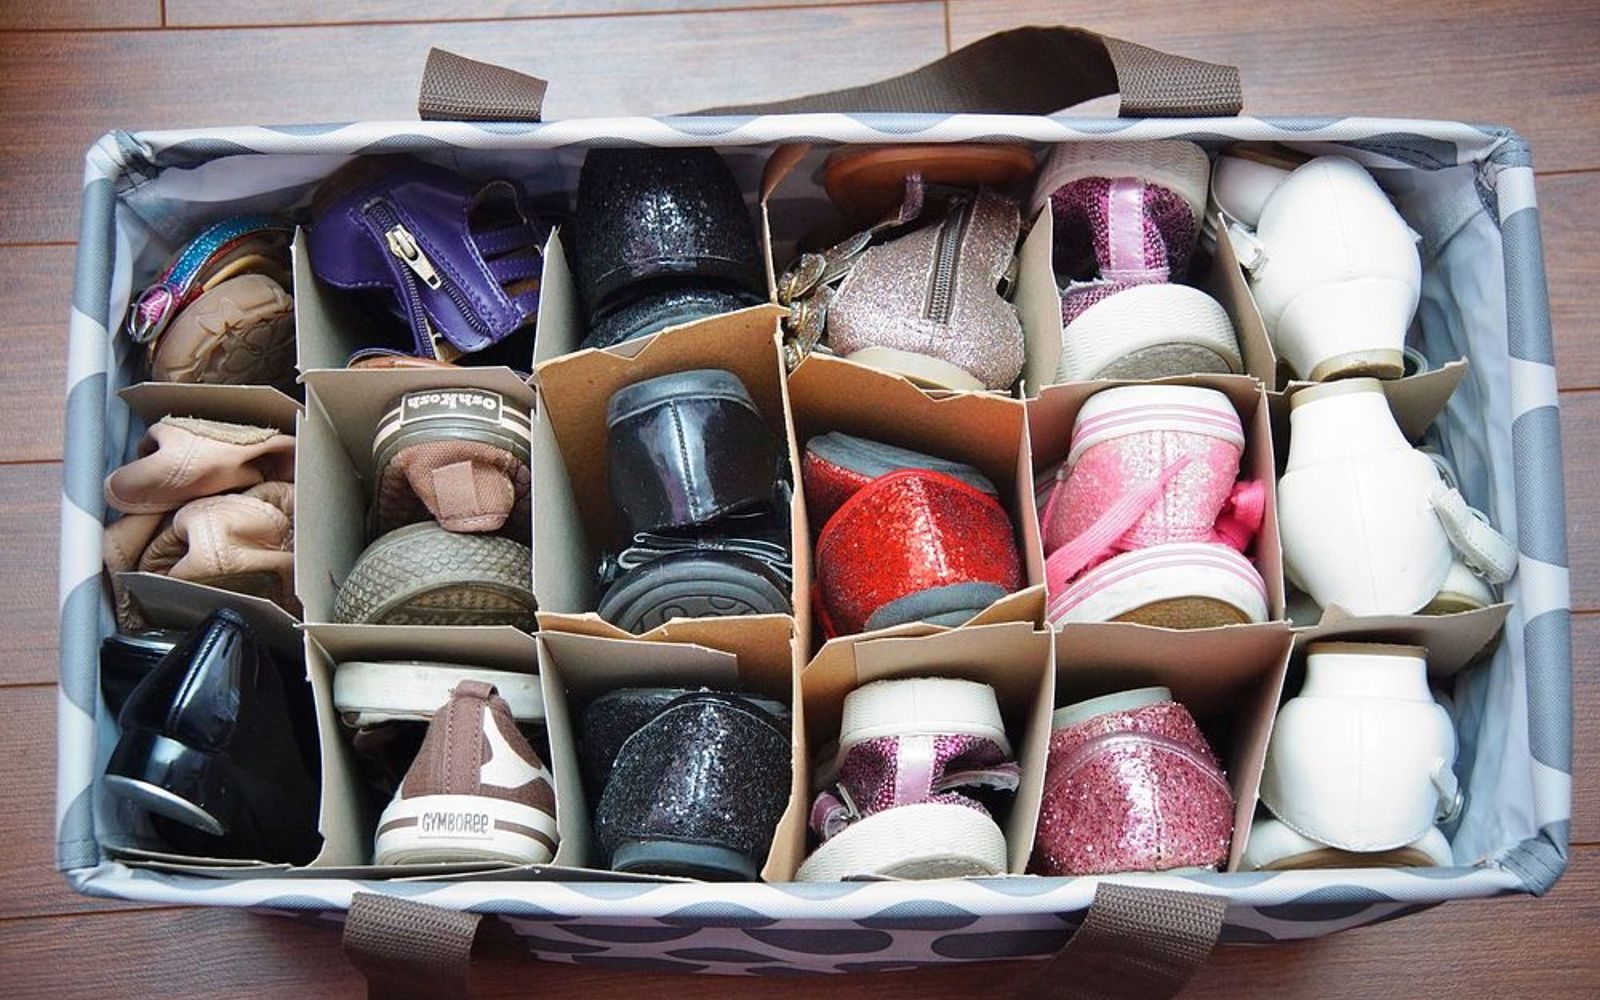 s the best organizing ideas of 2015 that you should do this year too, organizing, Organizing Shoes with a Tote Bag